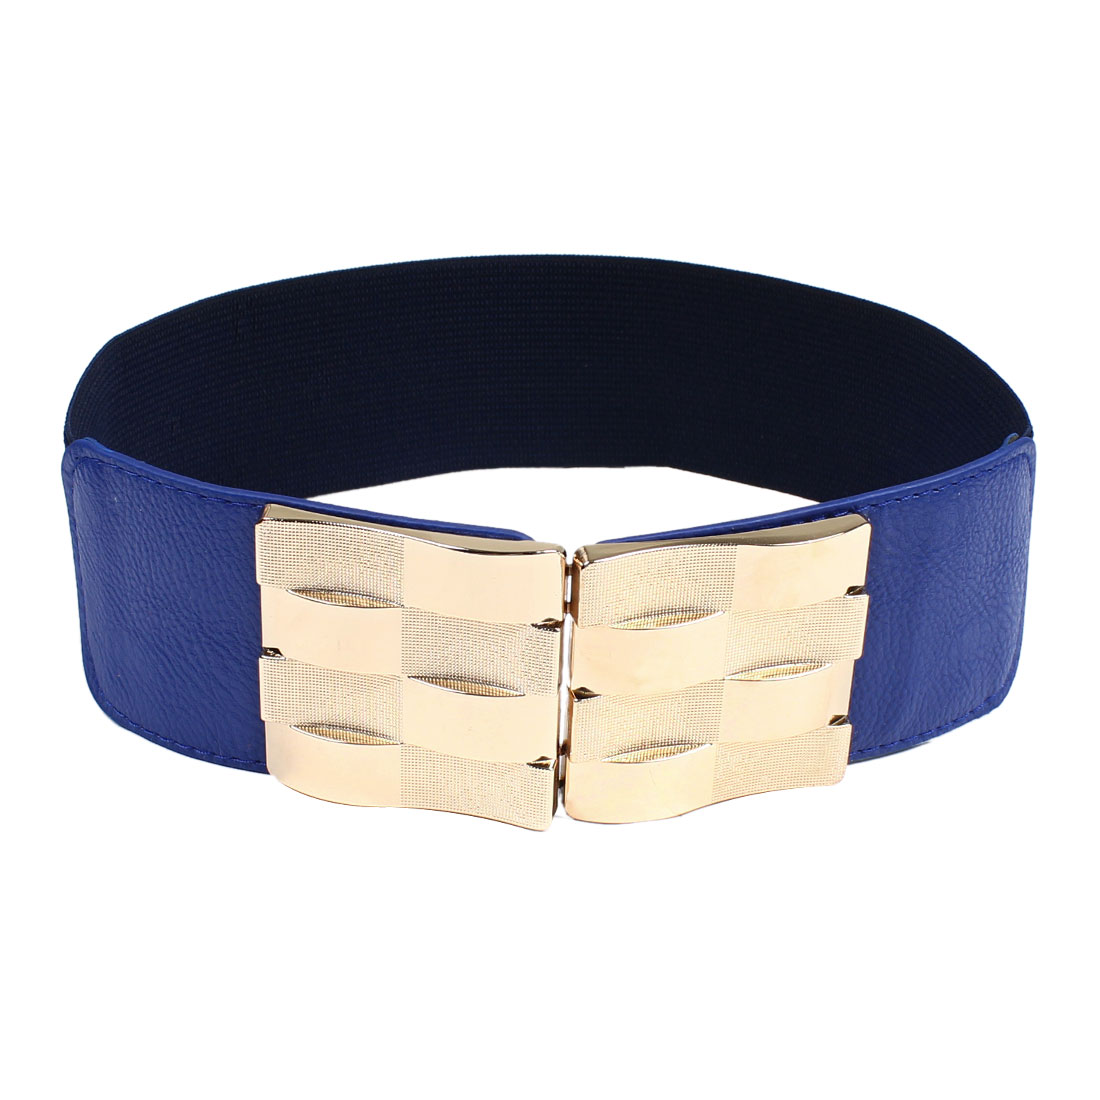 Gold Tone Buckle Royal Blue Wide Elastic Waistband Belt for Lady